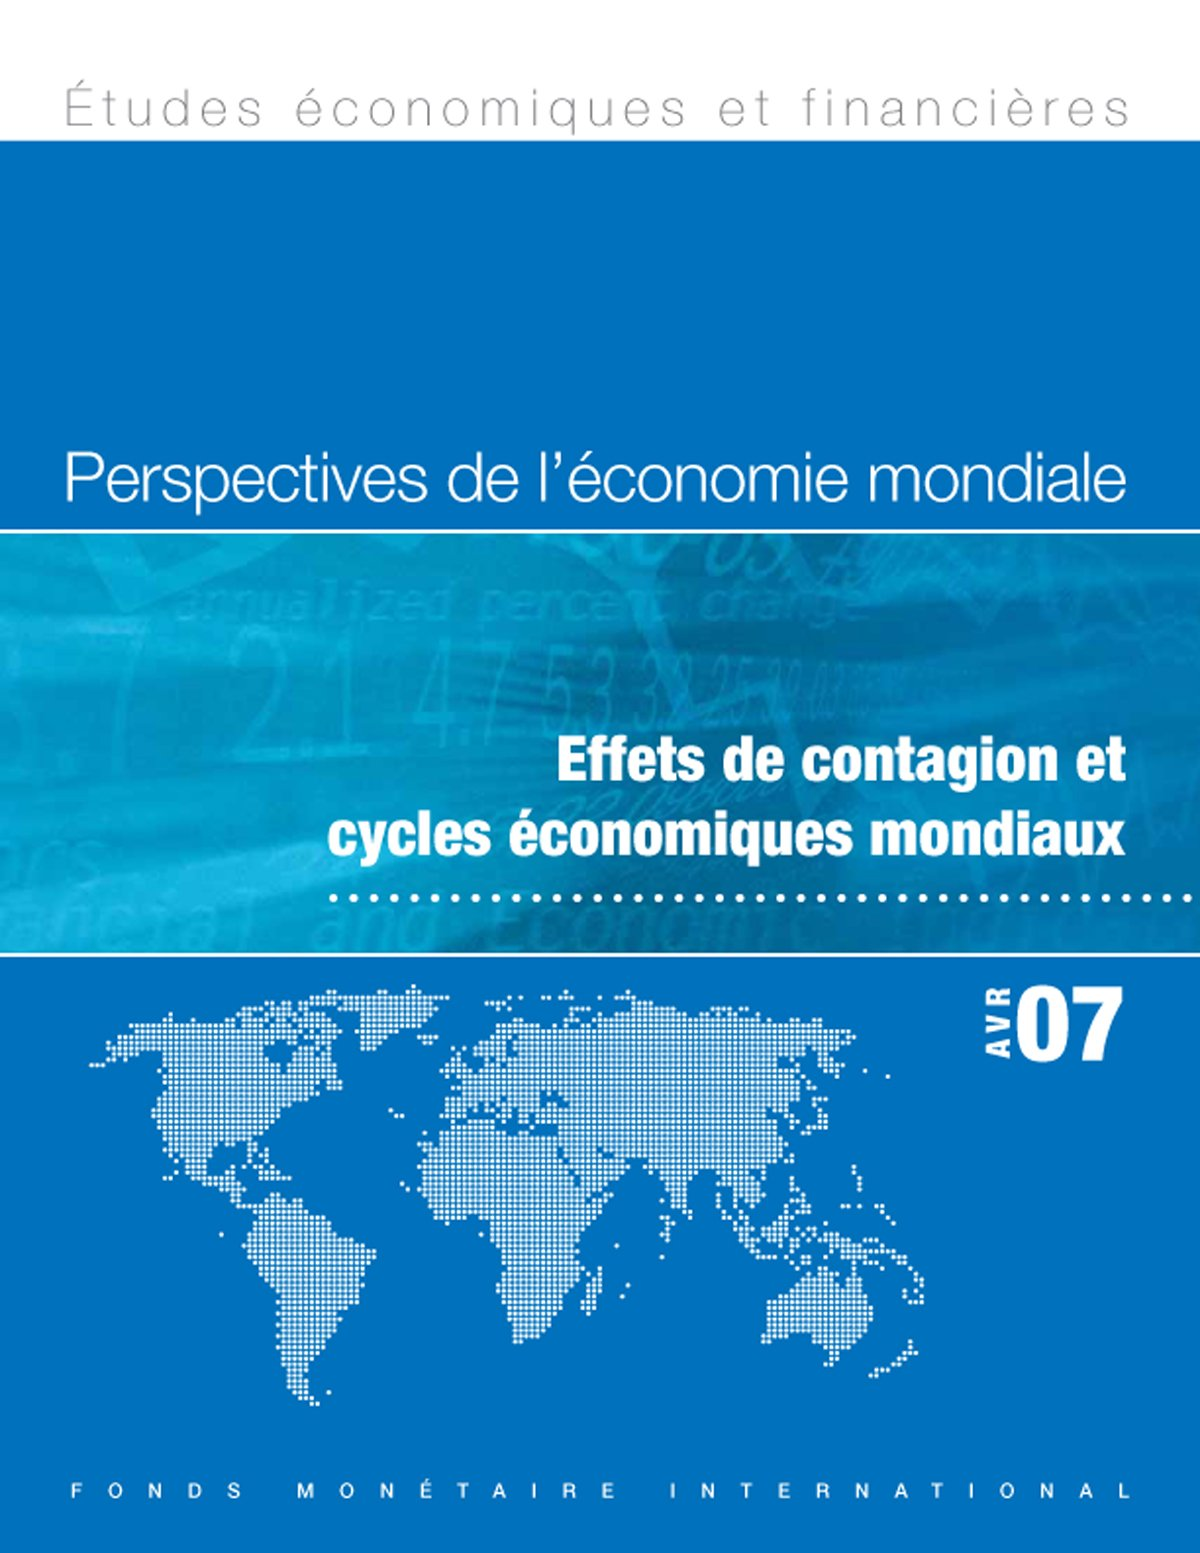 World Economic Outlook, April 2007: Spillovers and Cycles in the Global Economy (French Edition)